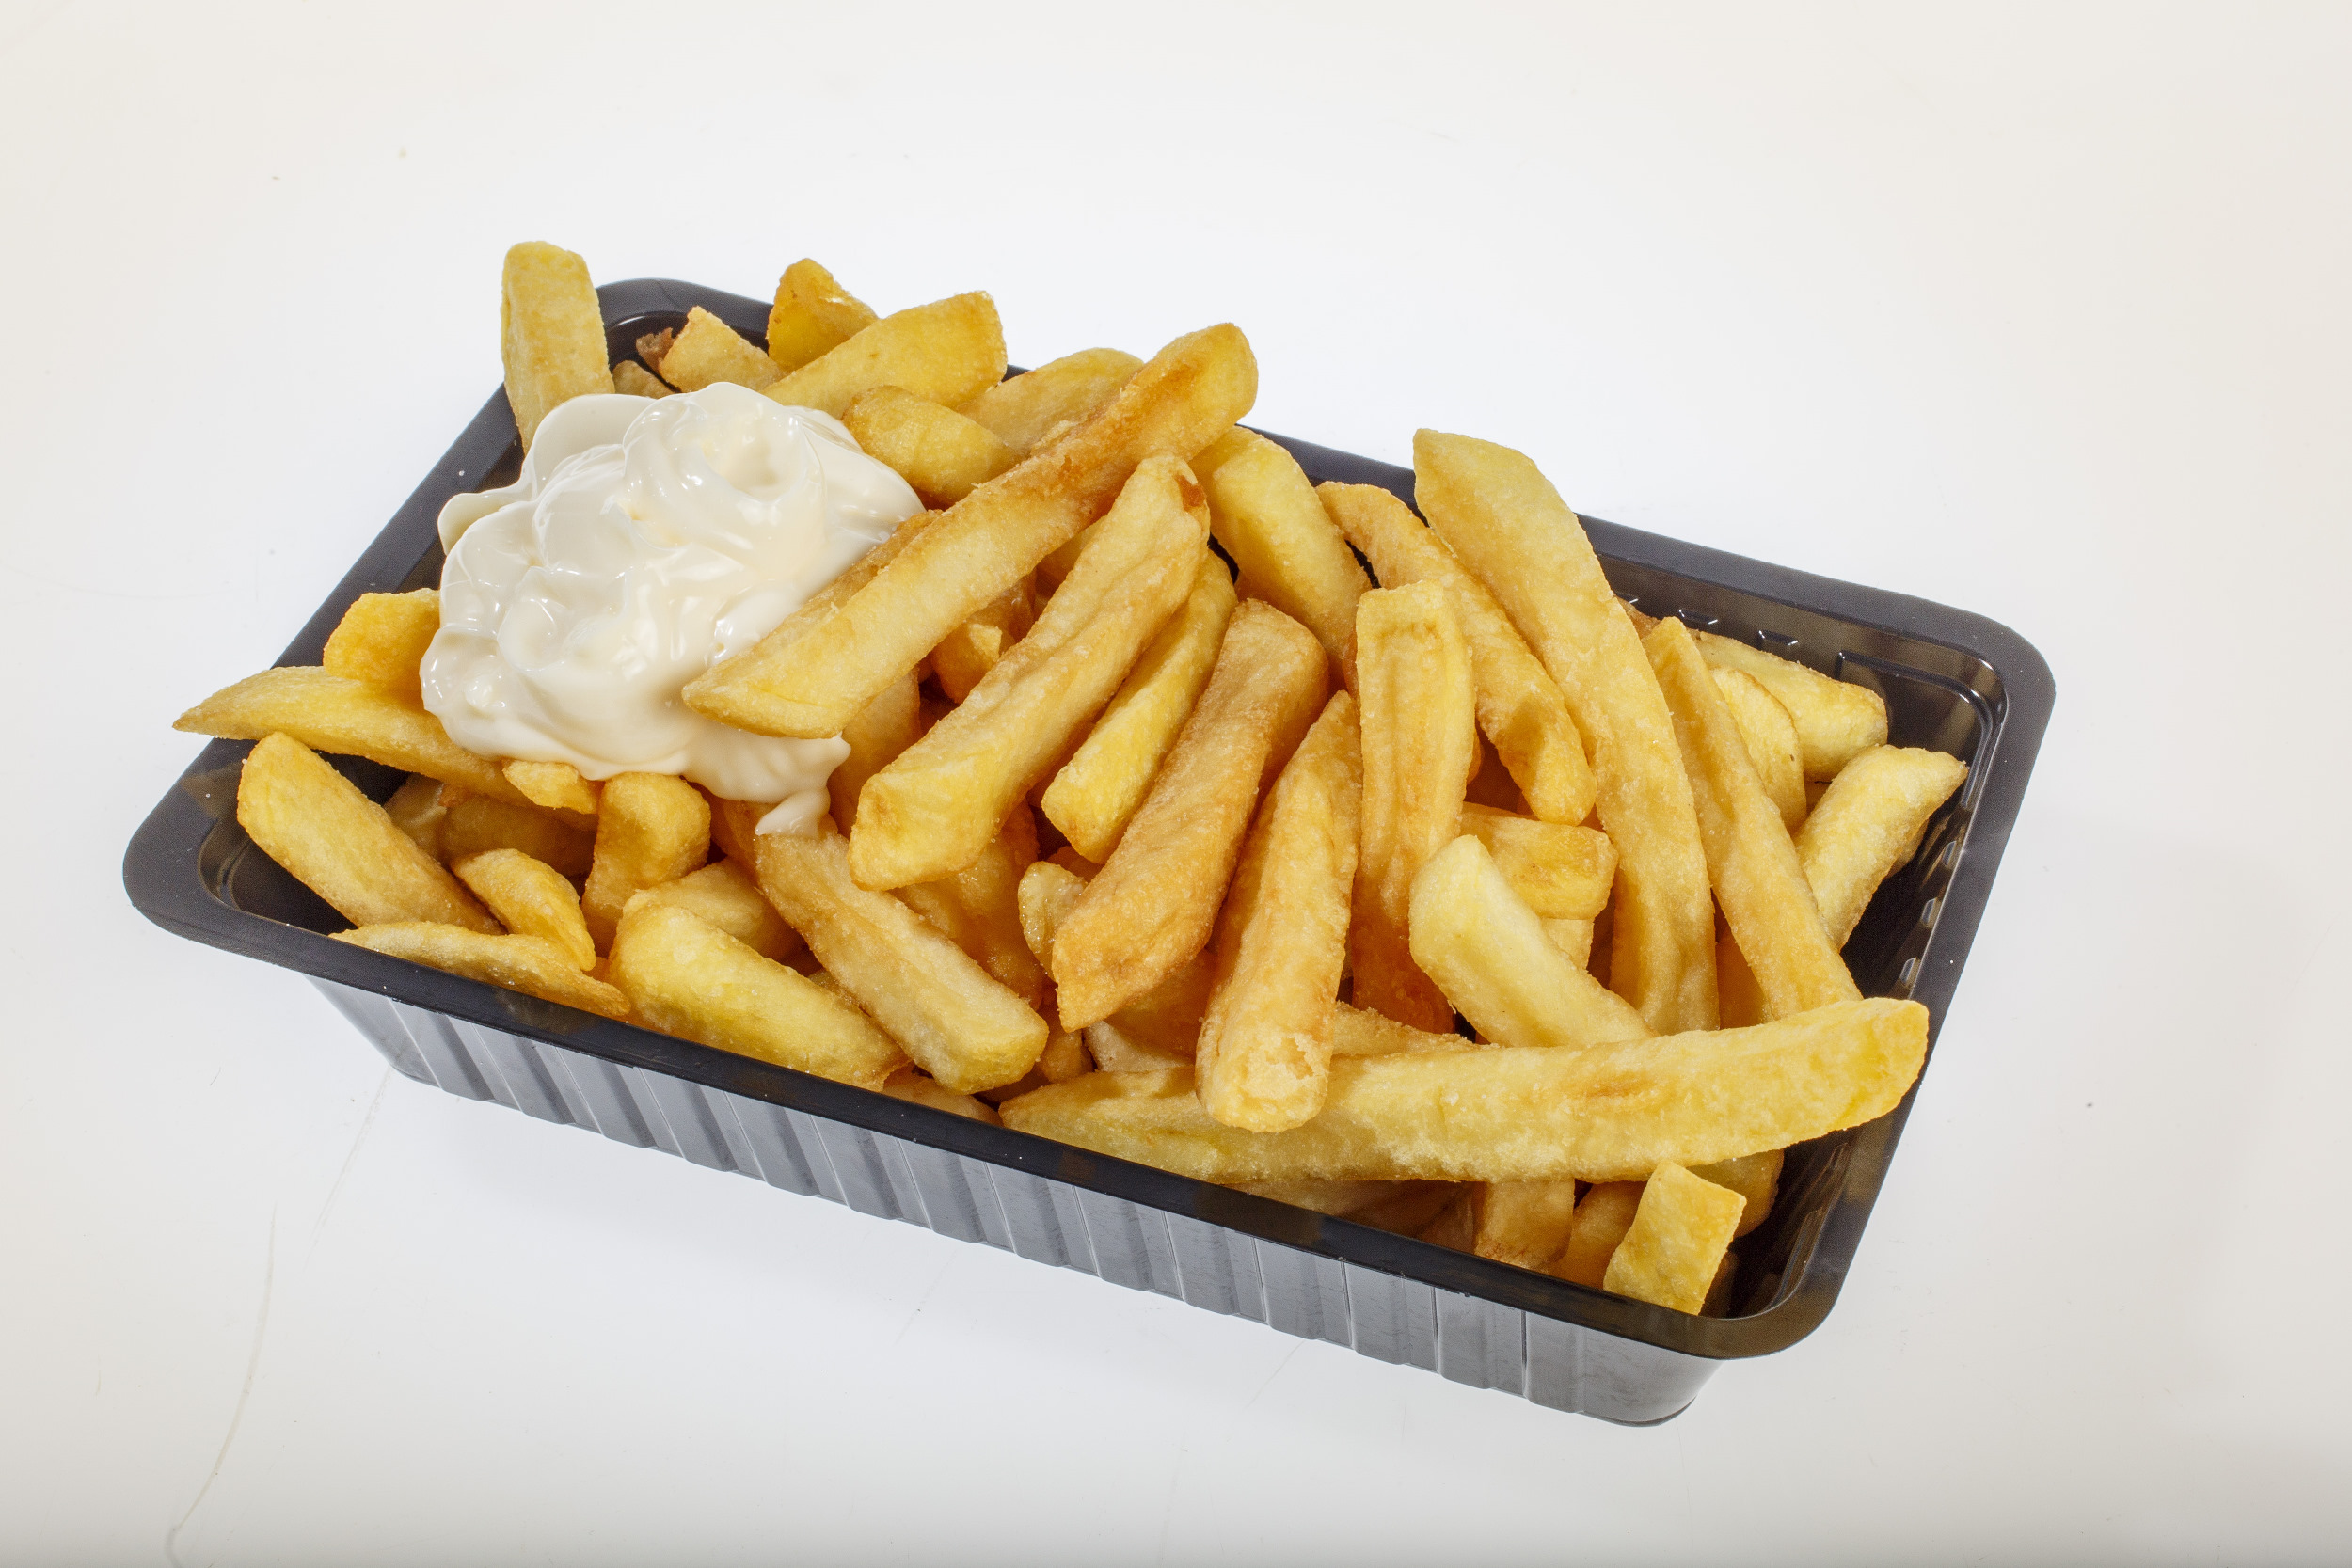 patat fries fastfood frituur mayonaise ongezond